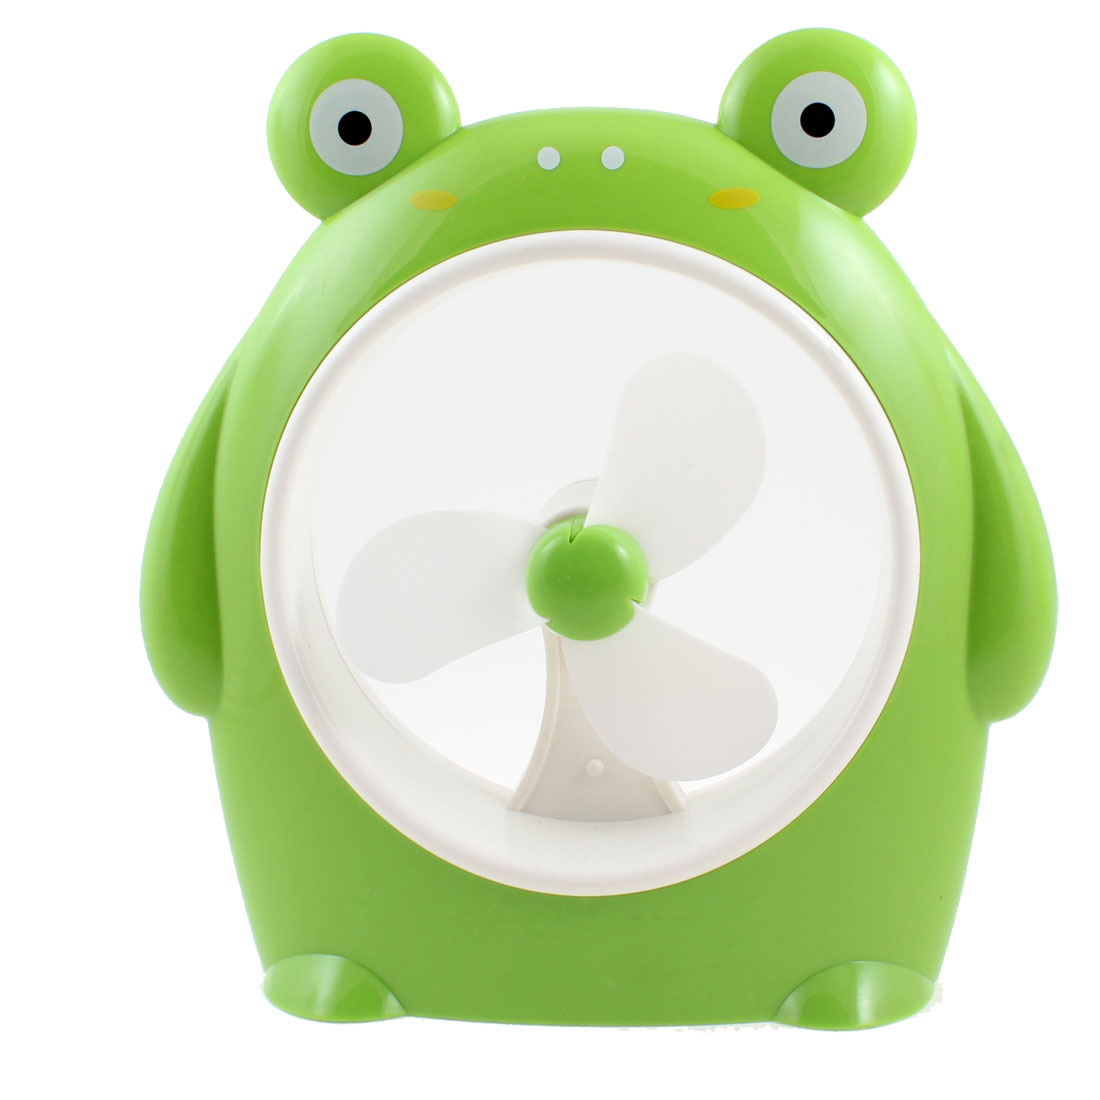 Portable Plastic Cartoon Pig Designed USB Battery Powered Personal  Fan for PC Laptop Green White